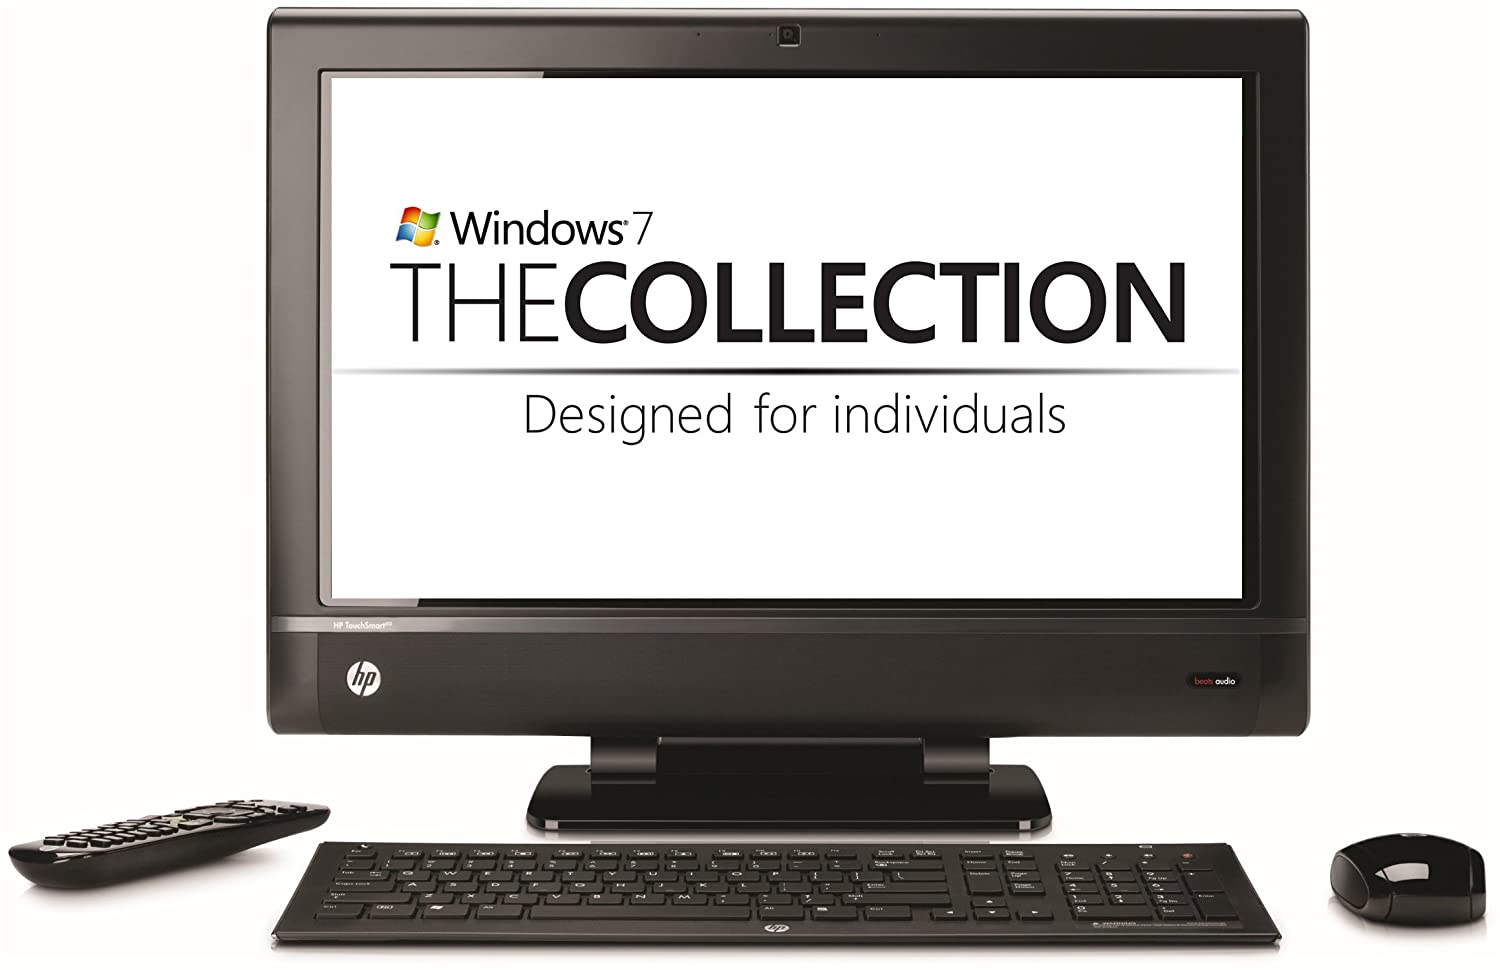 hp touchsmart 610 drivers for windows 8